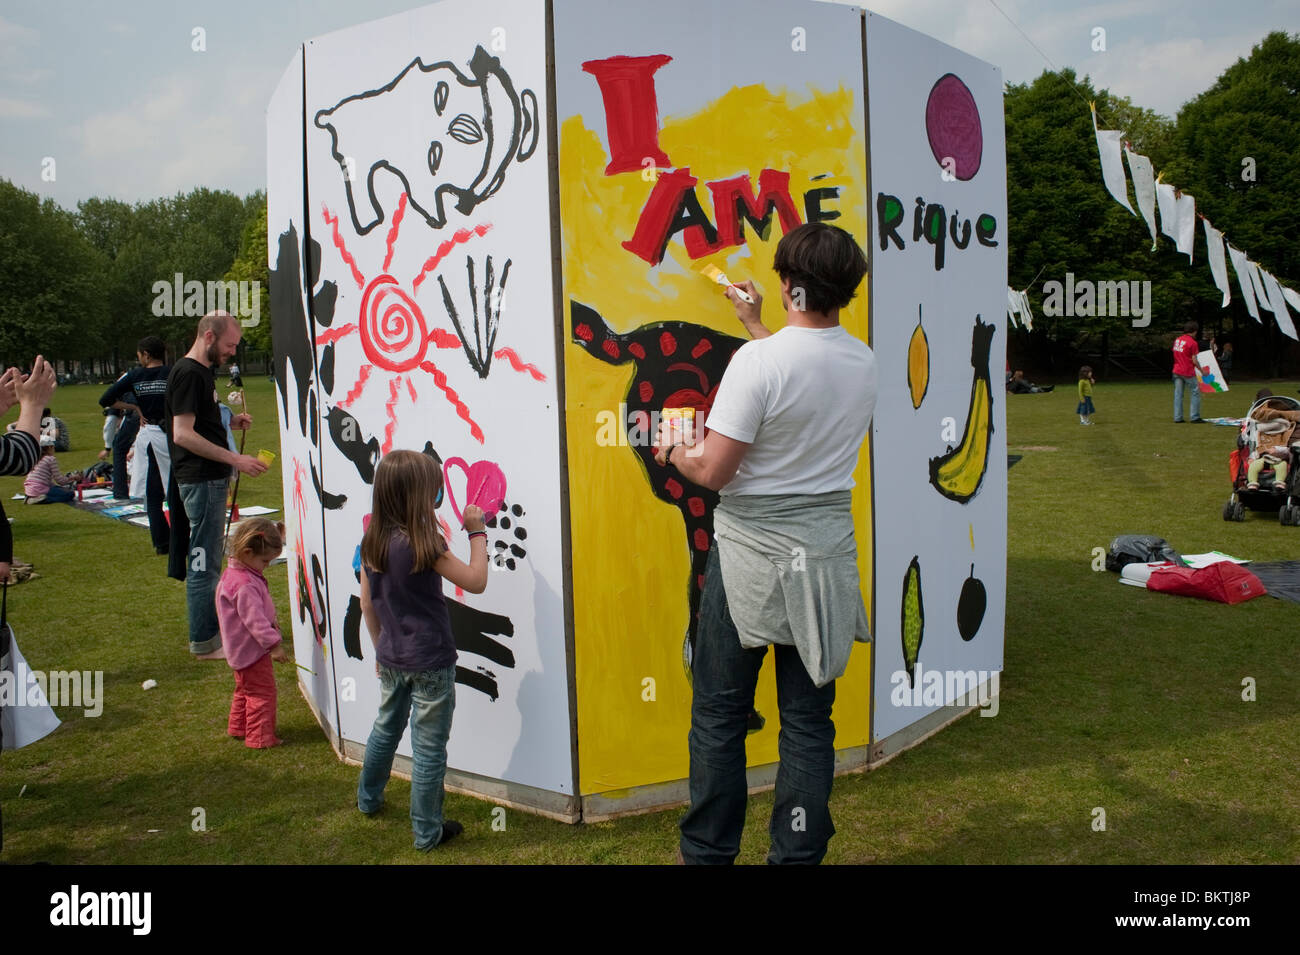 Celebration of World 'Fair Trade' Day, with people Painting Wall, on Lawn of La Villette Park, to Encourage - Stock Image